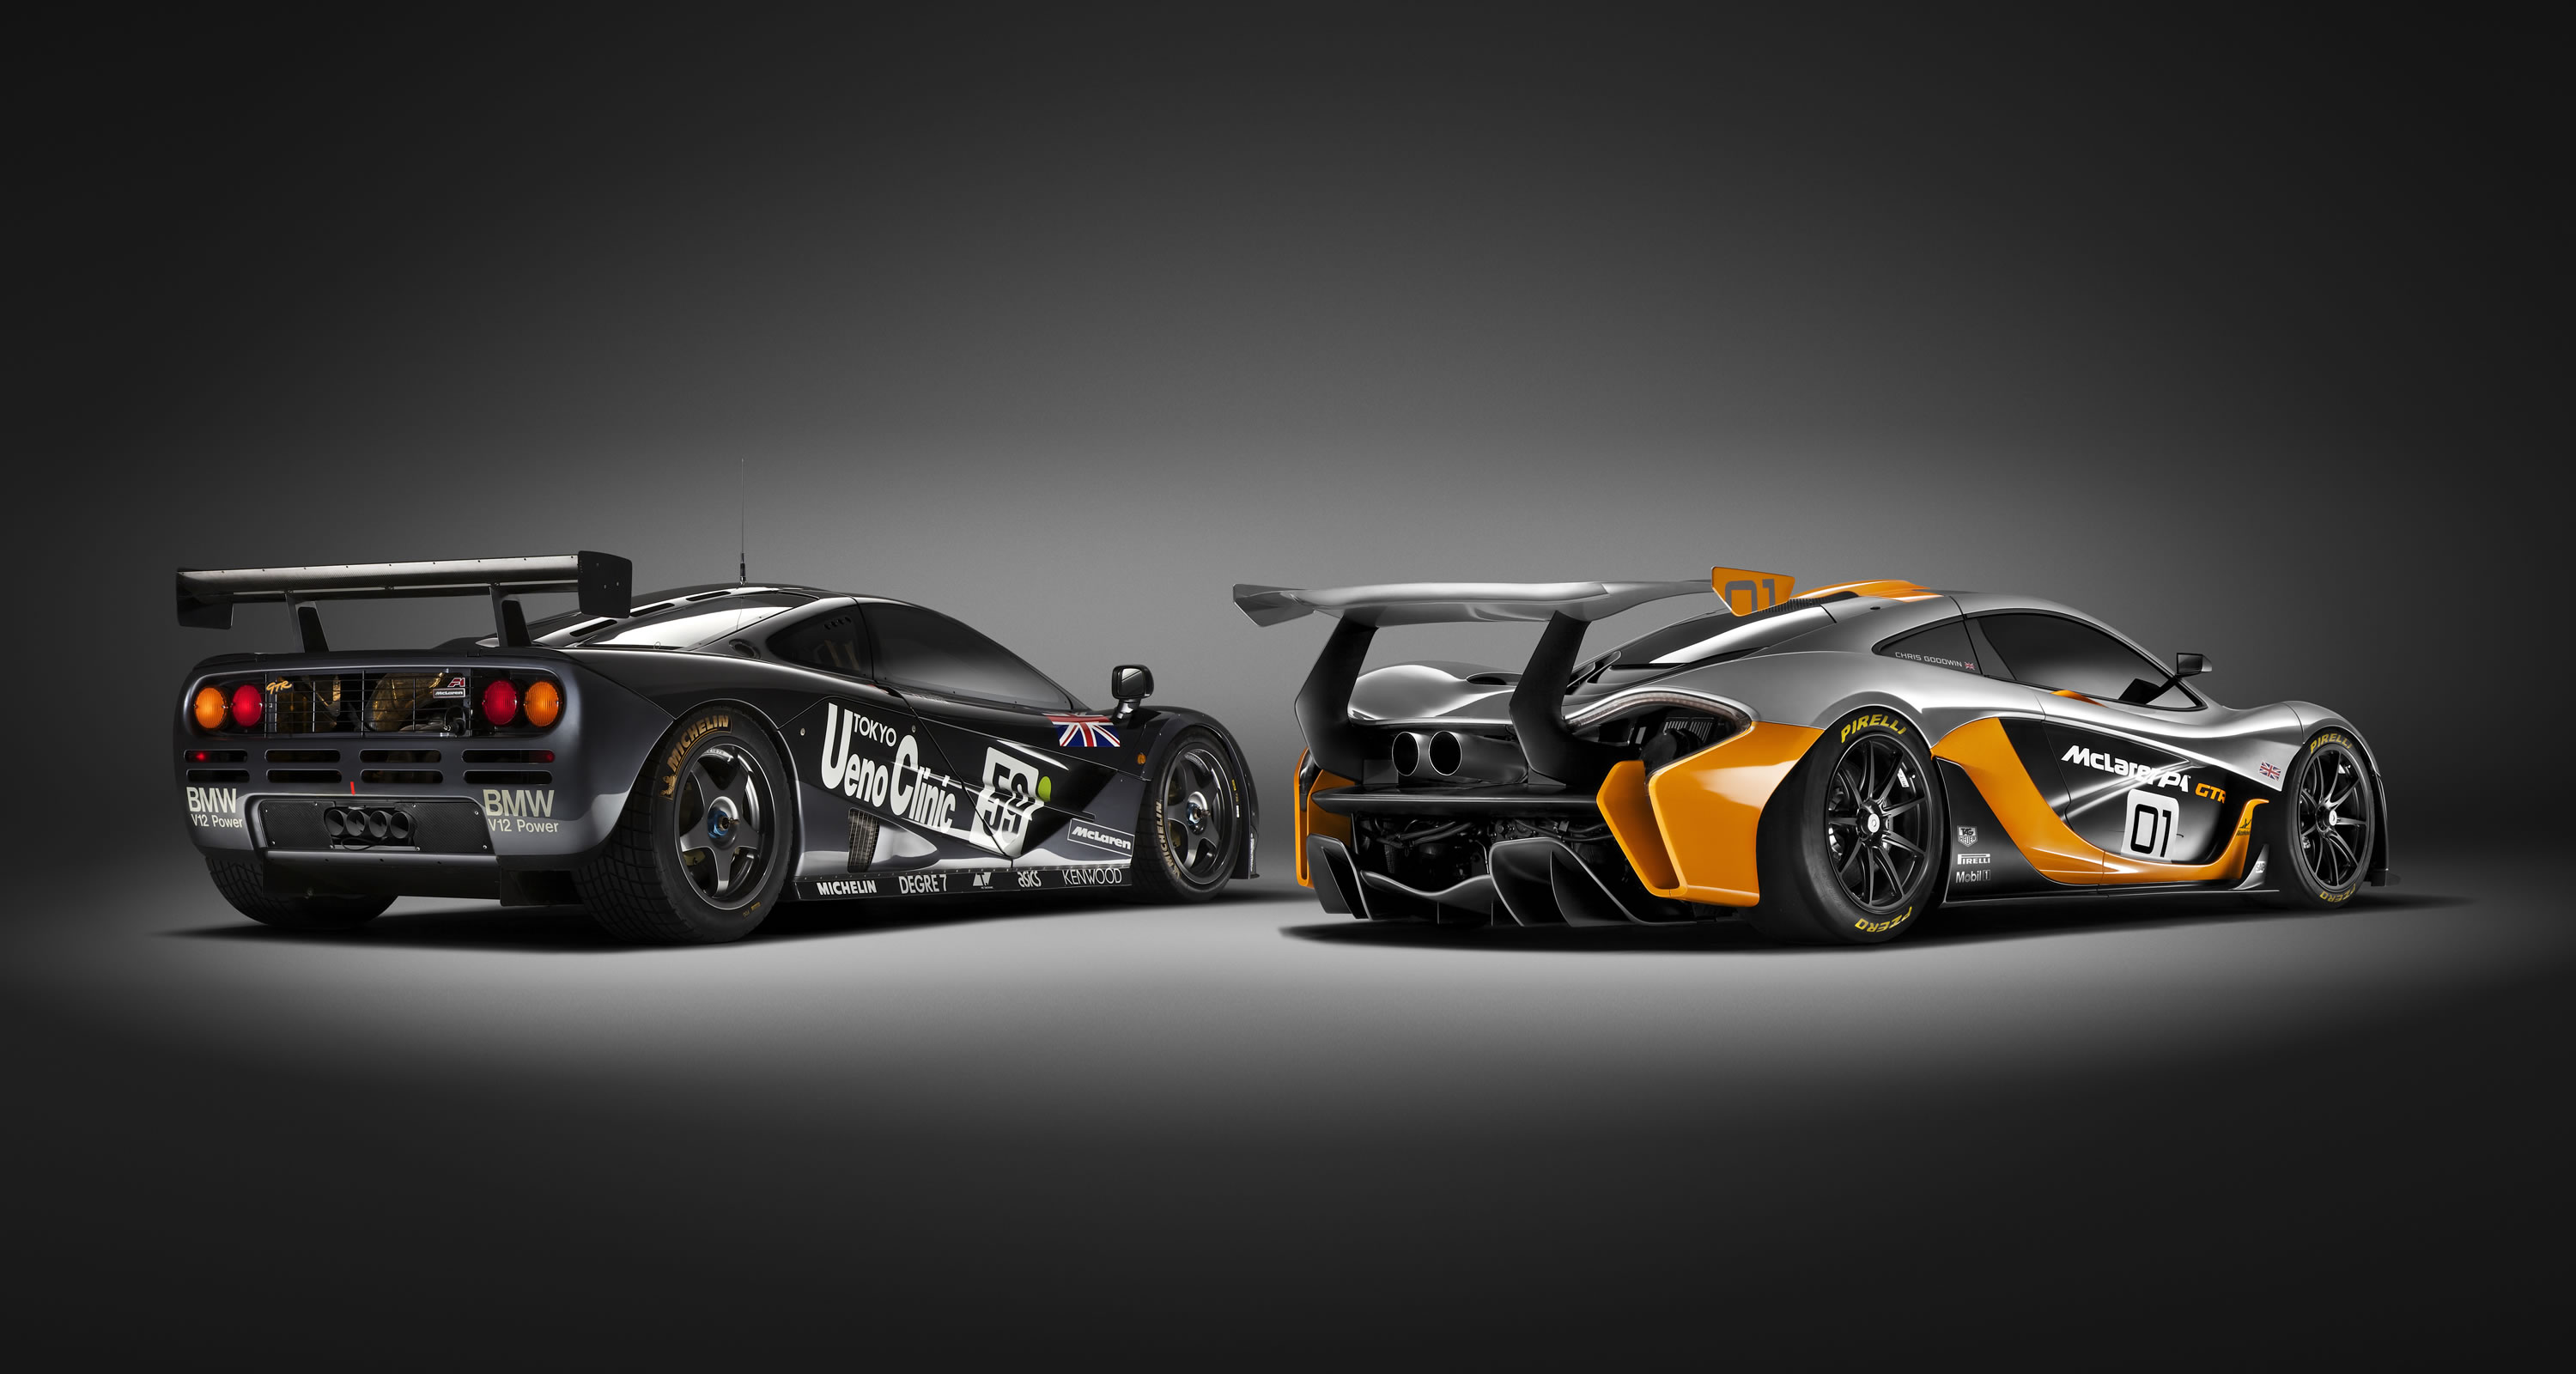 2014 mclaren p1 gtr race car concept photos specs and review rs. Black Bedroom Furniture Sets. Home Design Ideas